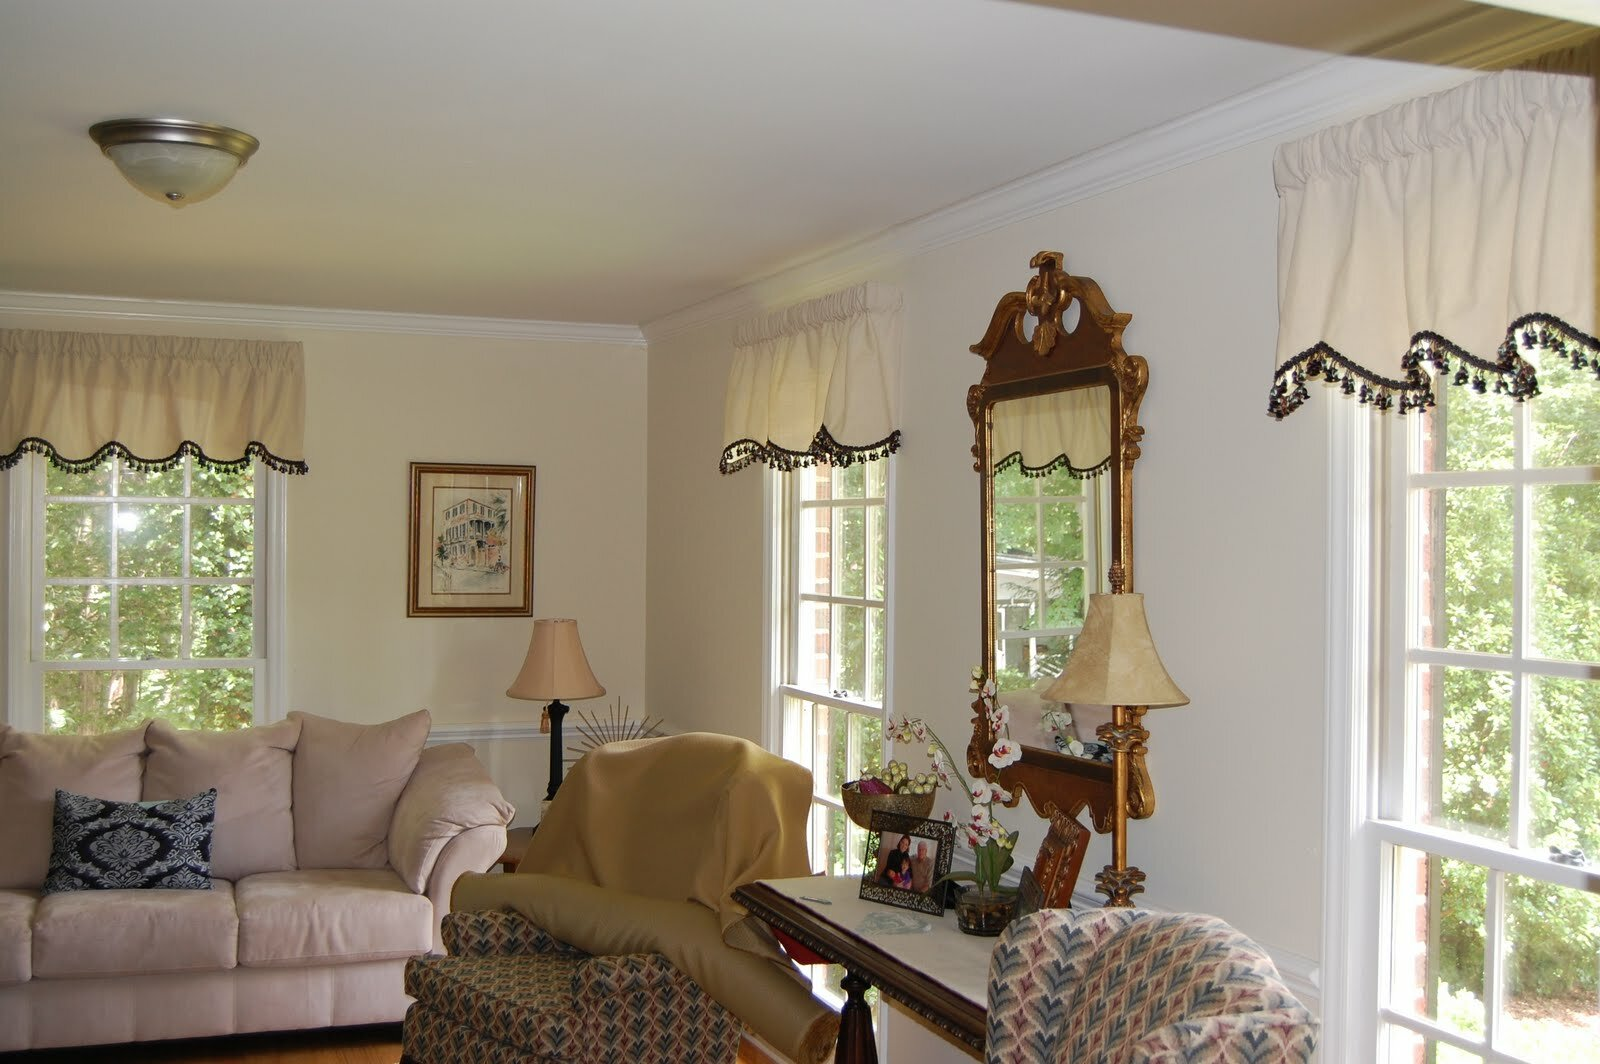 Living Room Valances | Windows Treatments Valance | Window Valances for Living Rooms